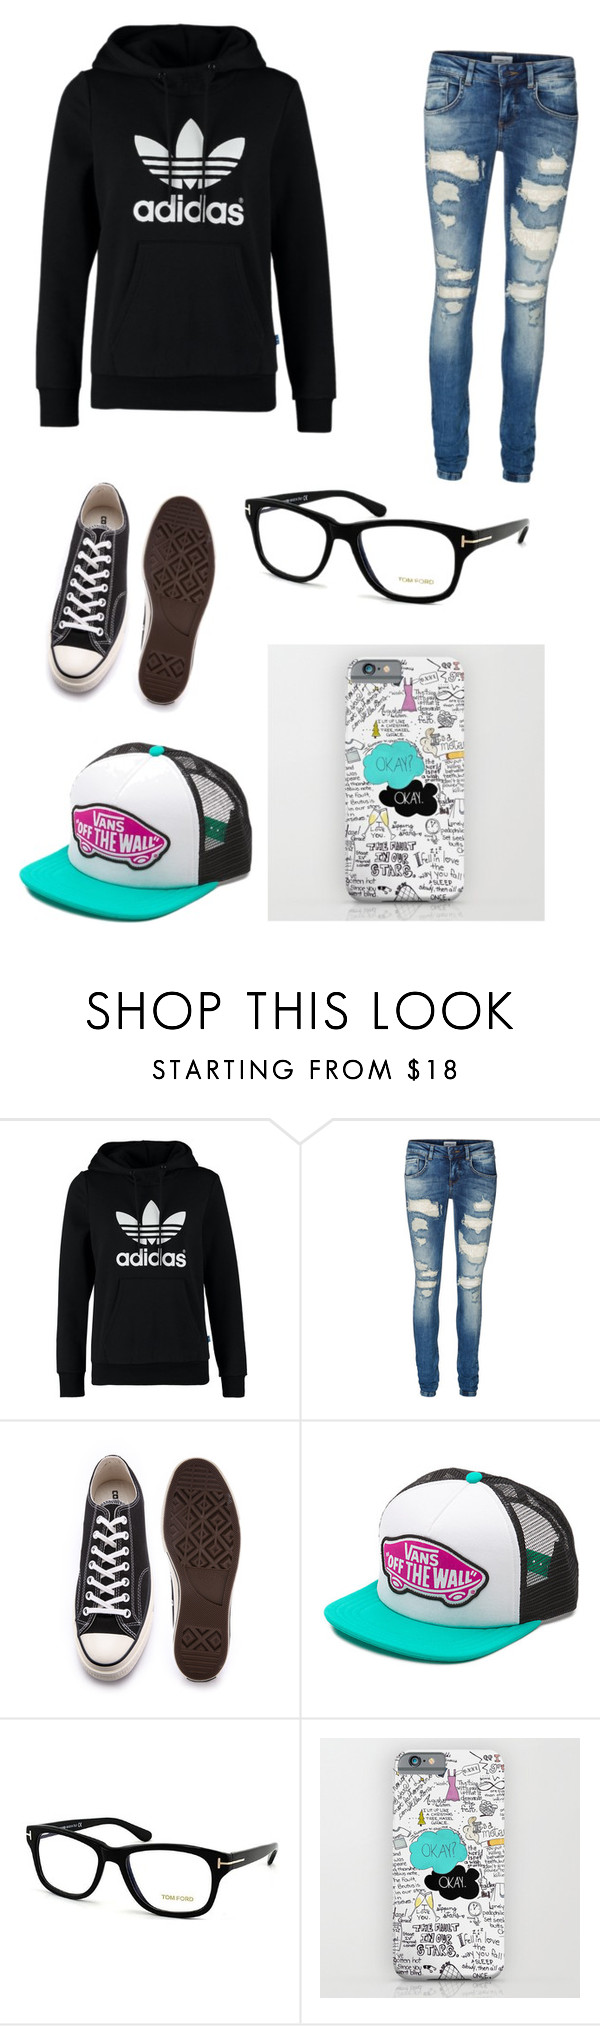 """First Day At School For A Nerdy Gamer Girl"" by officalzkeisha ❤ liked on Polyvore featuring interior, interiors, interior design, ev, home decor, interior decorating, adidas Originals, Vero Moda, Converse ve Vans"